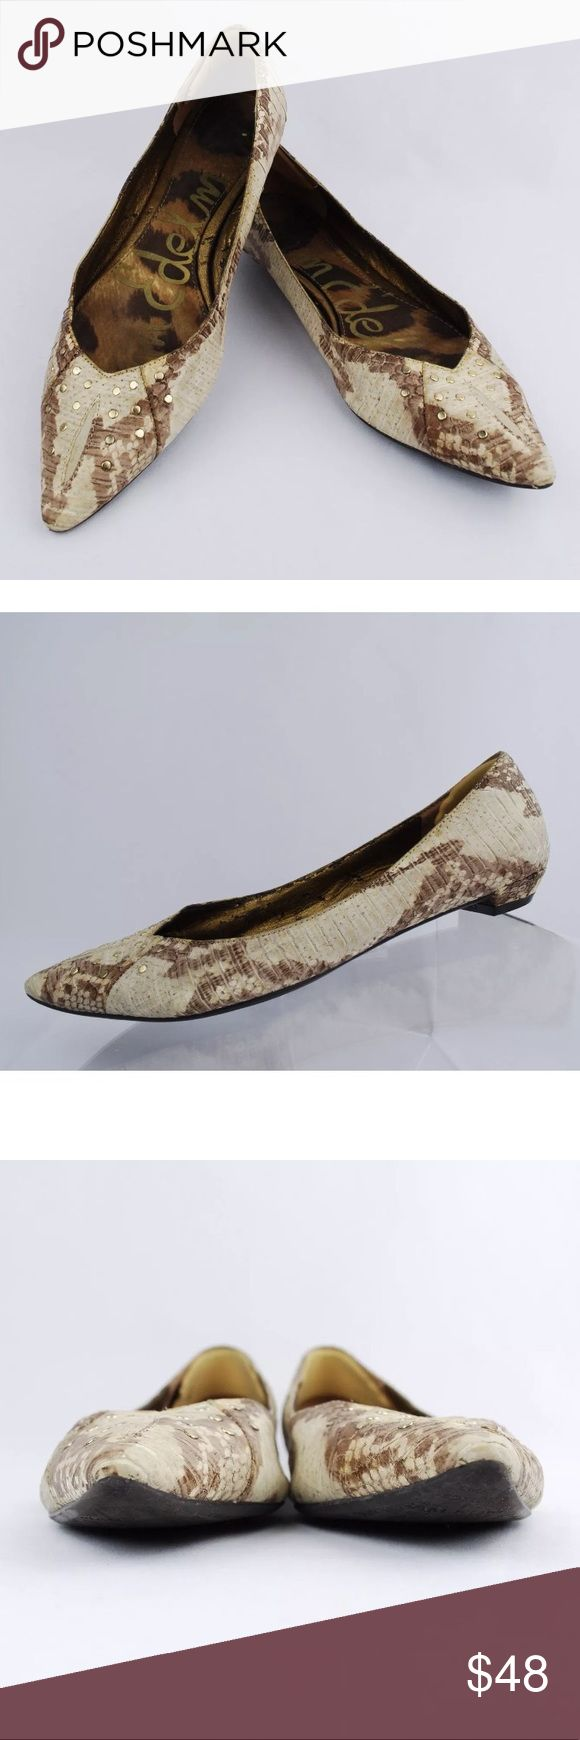 Sam Edelman Irina Pointed Toe Flats Snake-effect These are are so cool they look like real snakes 🐍      Sam Edelman Irina Women's Pointed Toe Flats Snake-effect Leather Size 6.5 M  Size: 6.5 M Color: Beige/ Brown Design: Pointed Toe Flats, snake-effect leather.  Condition: Pre-Owned/ Good Condition, Please Check the Photos. Sam Edelman Shoes Flats & Loafers